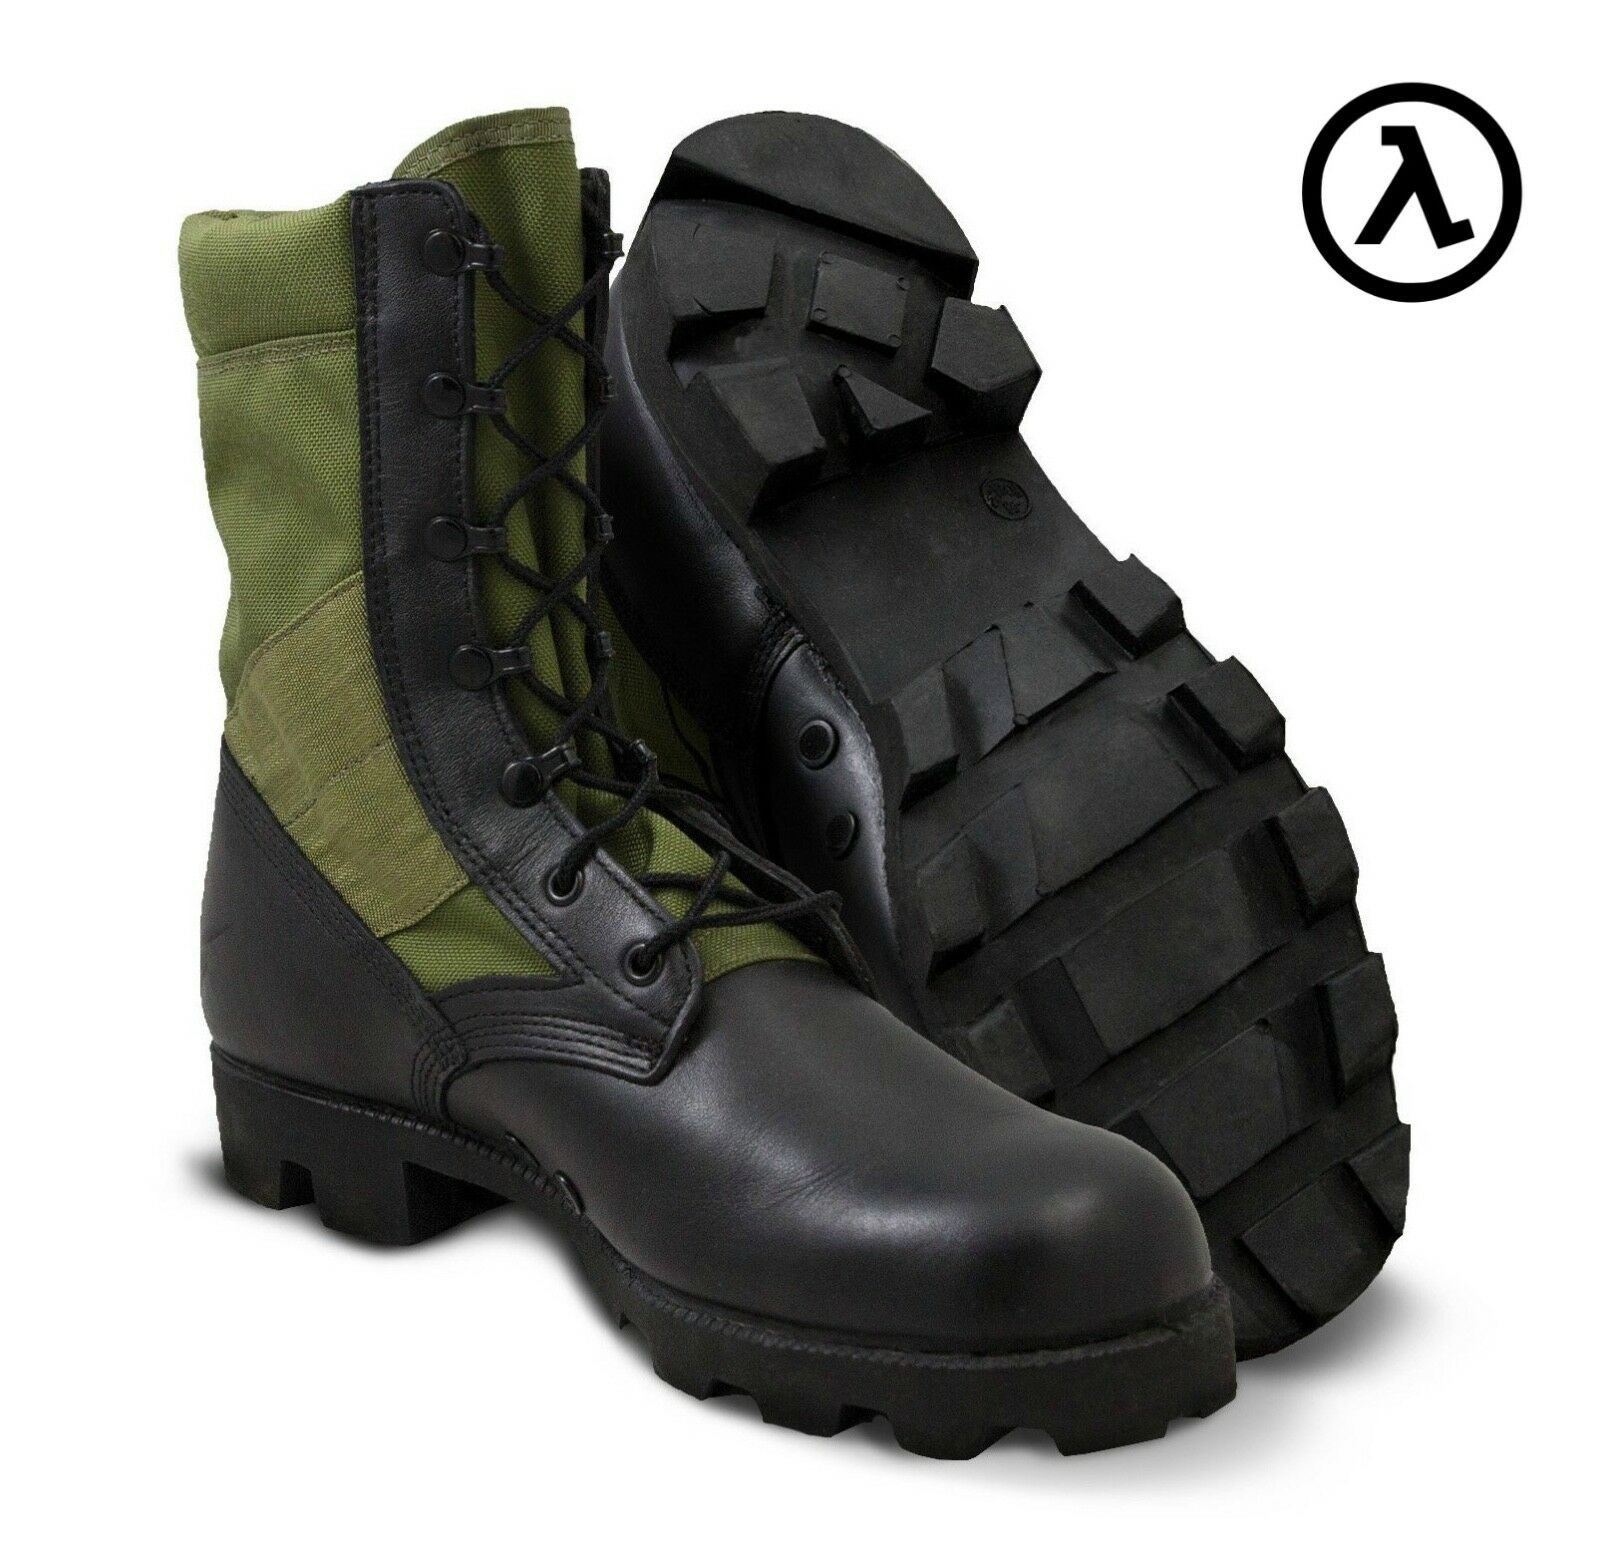 ALTAMA ALTAMA ALTAMA JUNGLE PX 10.5  MILITARY Stiefel 315506   OLIVE DRAB  ALL GrößeS - NEW 45bd19